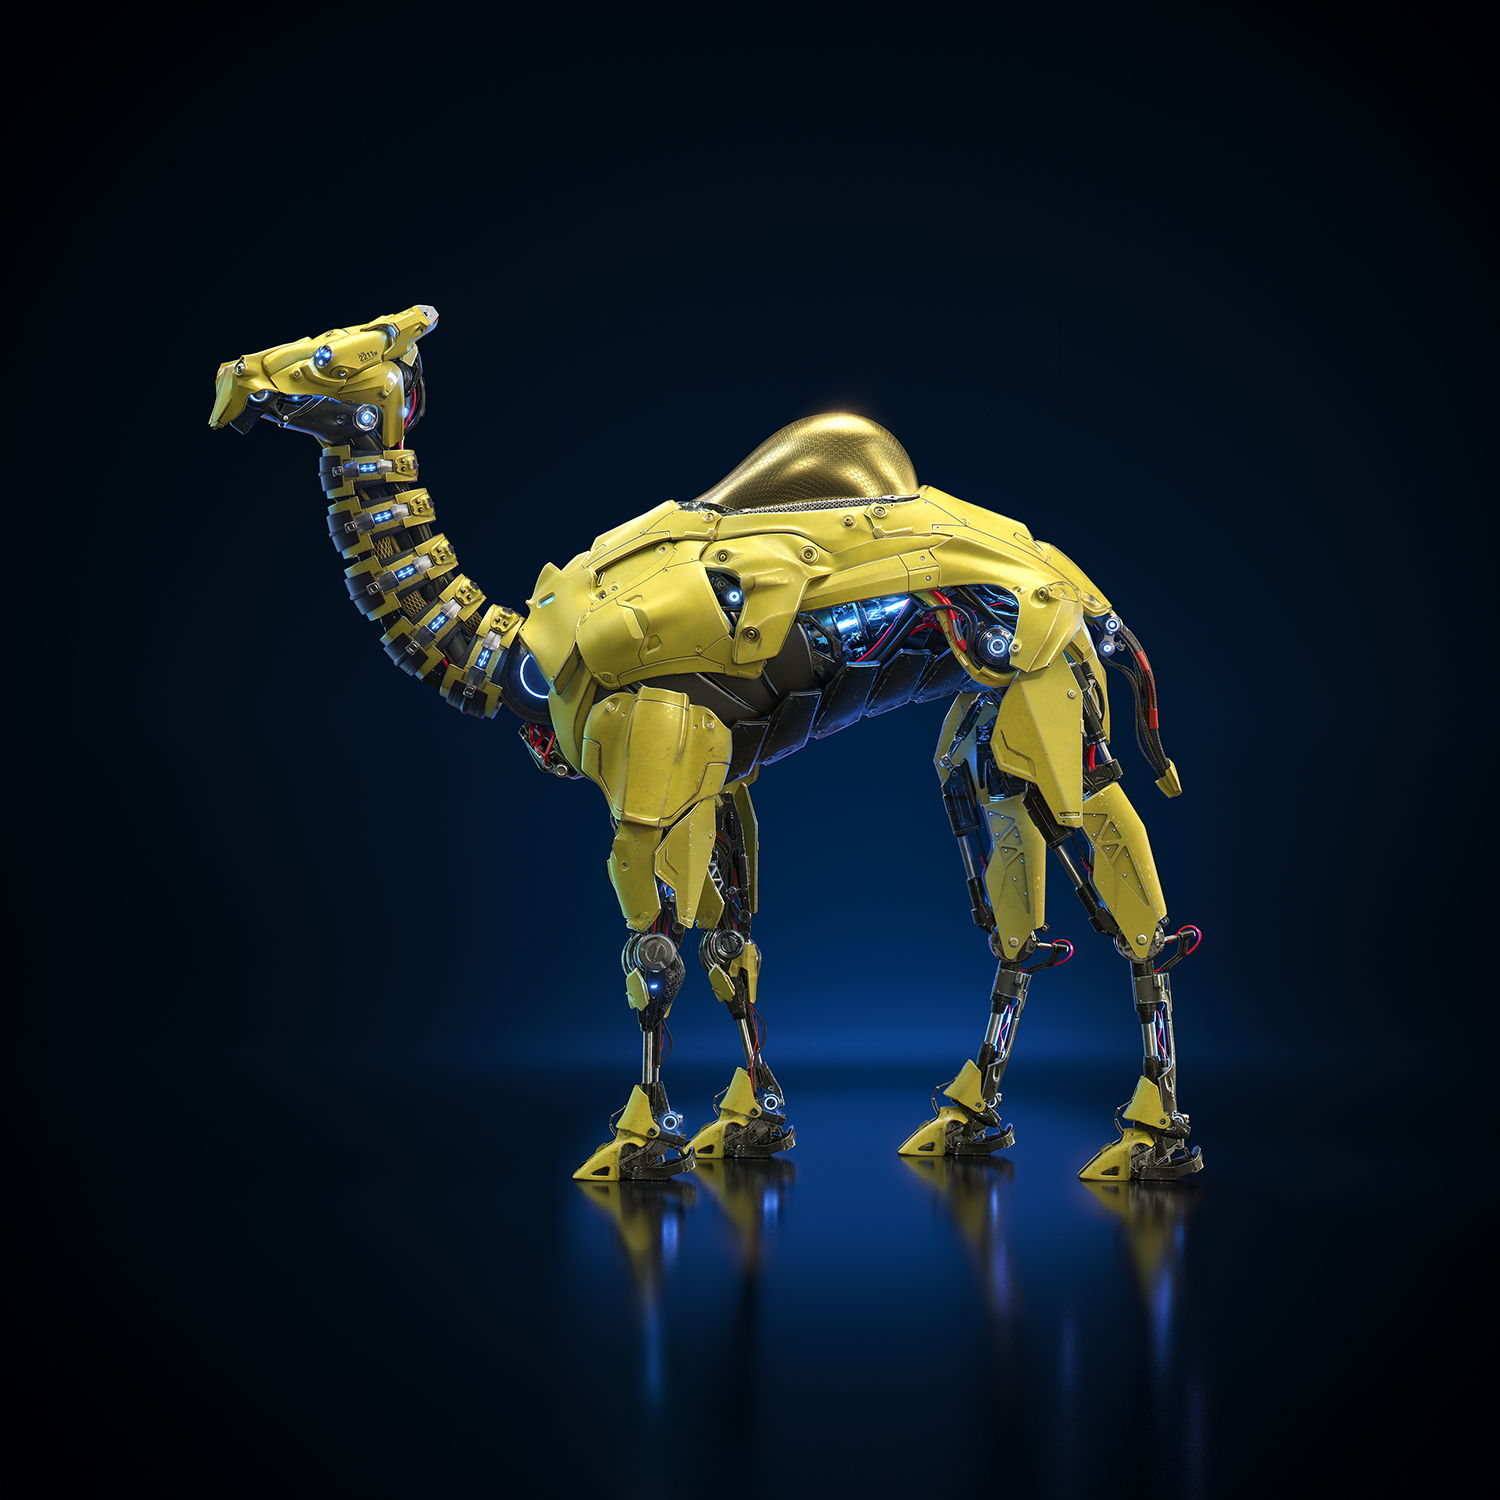 Camel Robot Digital Art by Edu Torres, digital art, futuristic, adesign award and competition